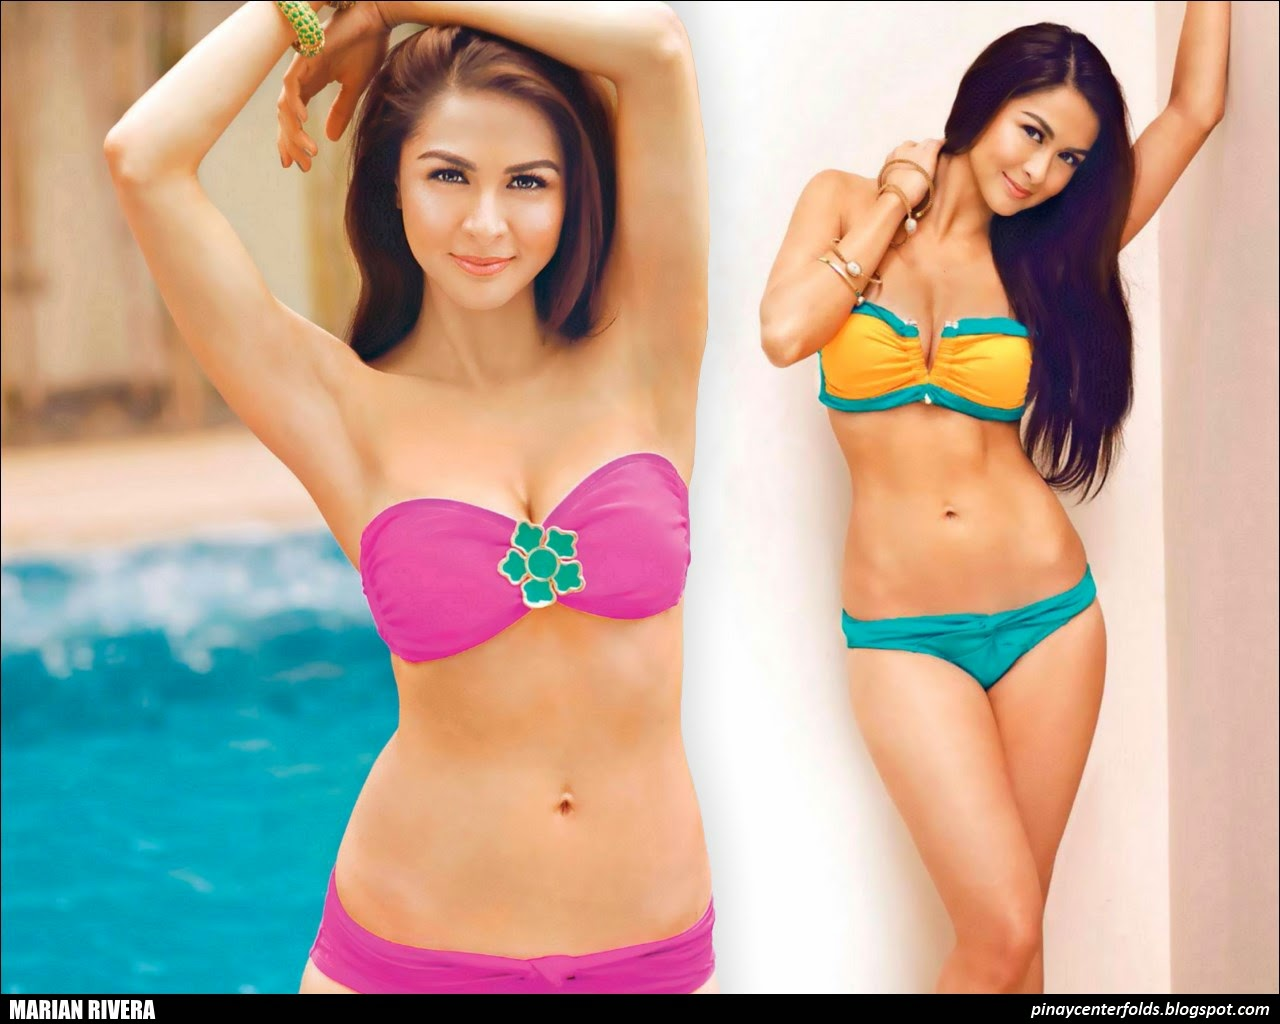 Apologise, Marian rivera fhm cover can look